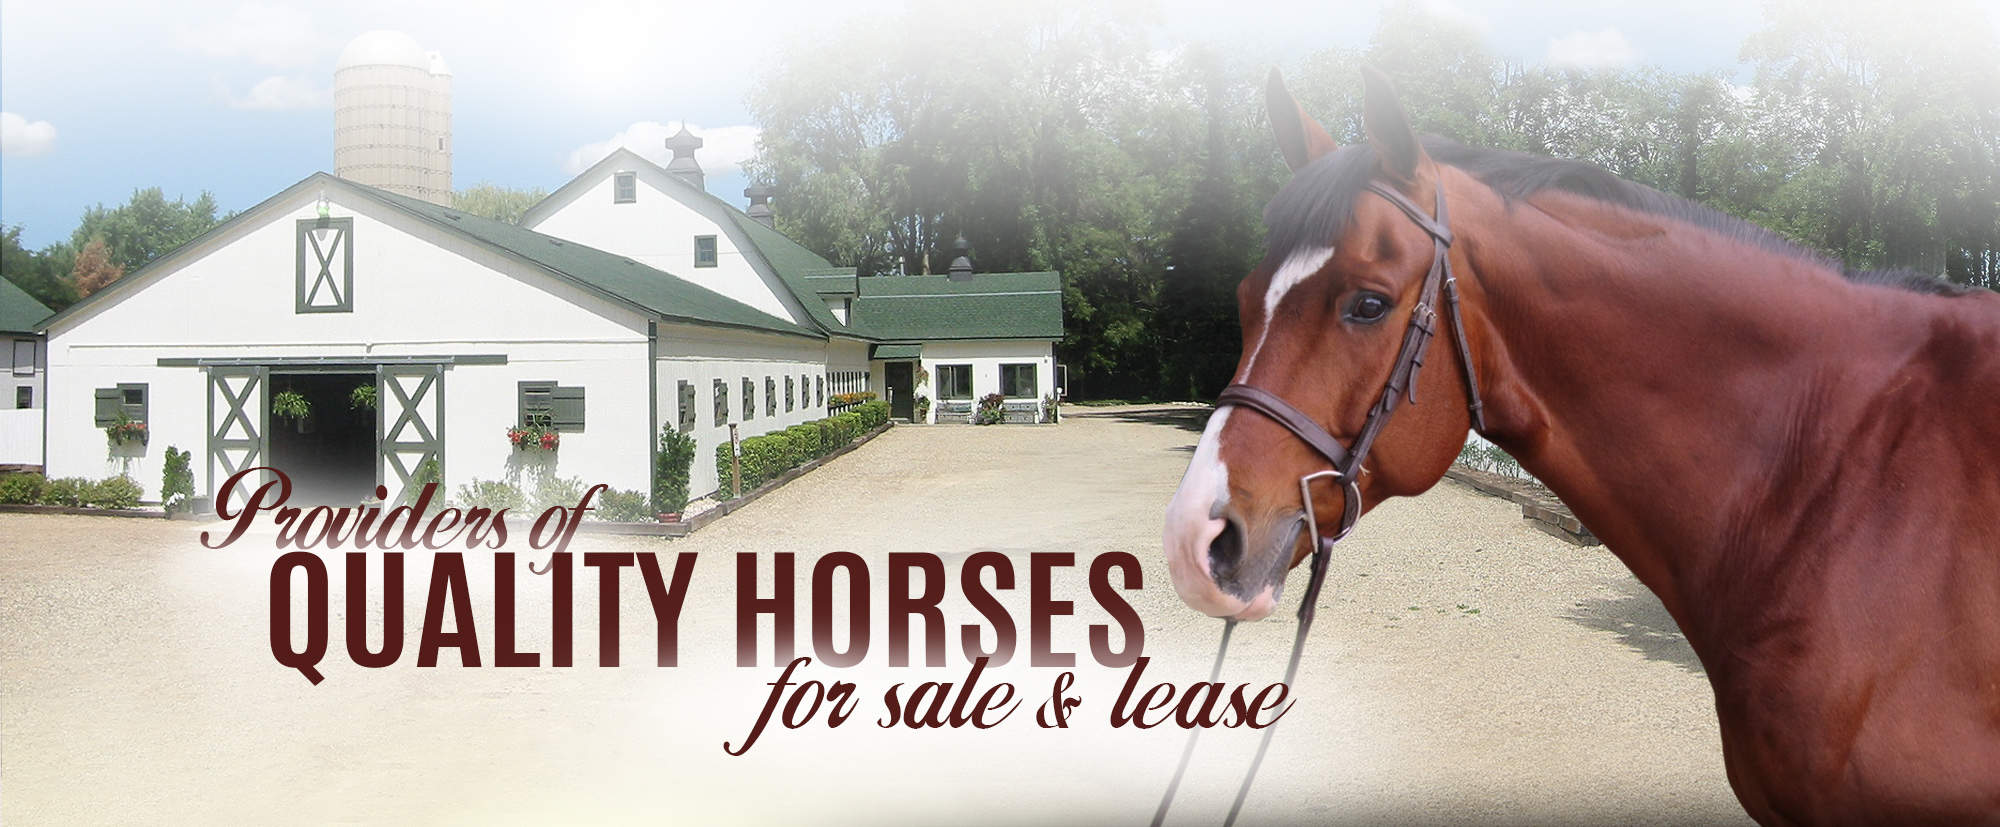 Galway Farm providers of quality horses for sale & lease